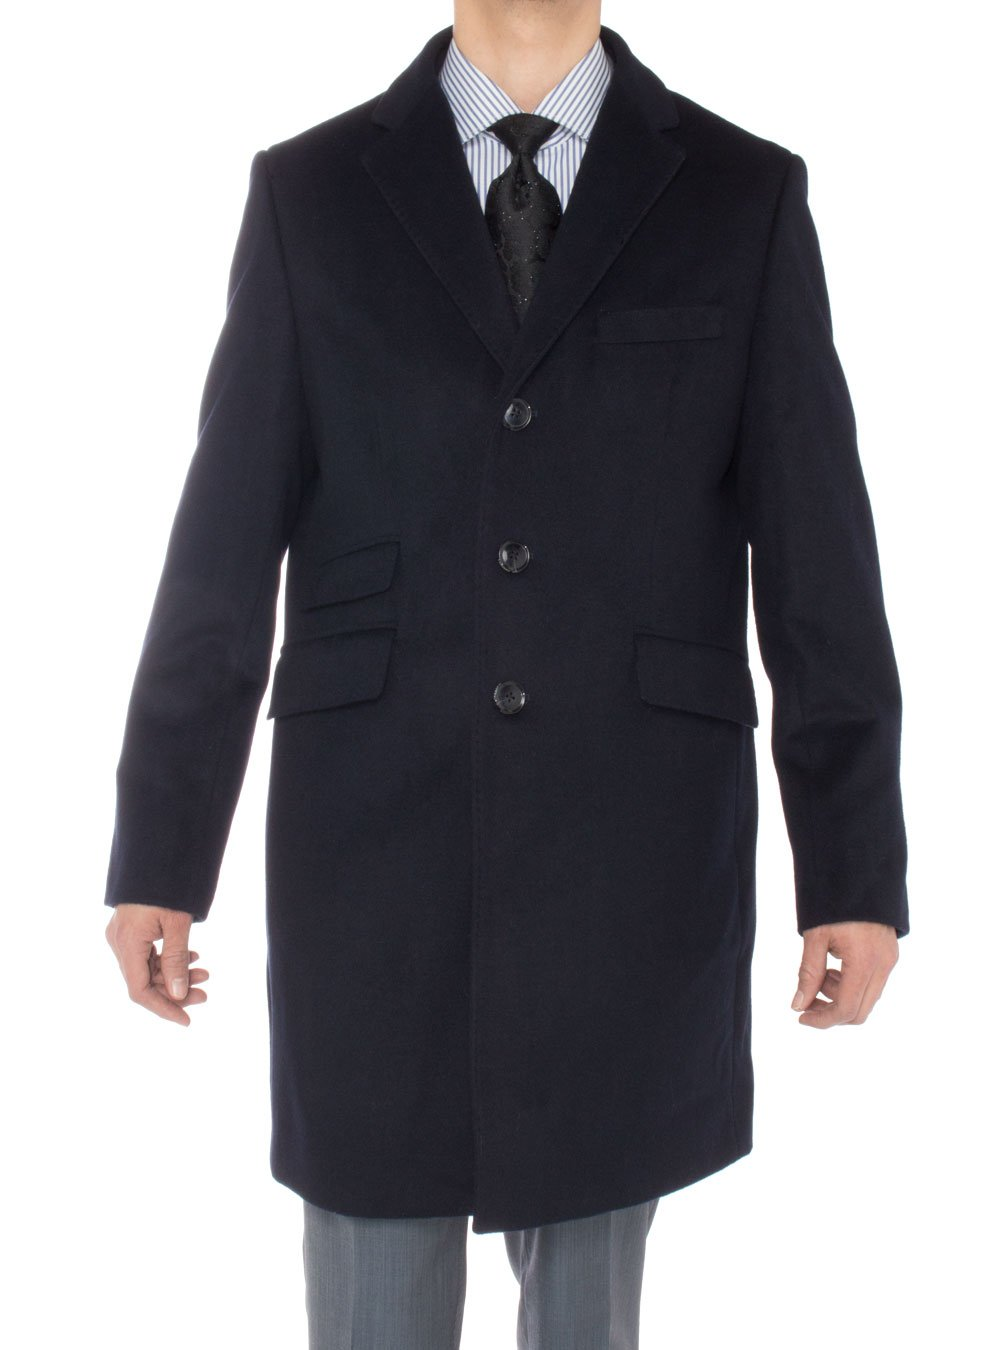 Luciano Natazzi Men's Cashmere Topcoat Modern Ticket Pocket Trench Coat Overcoat (48 US - 58 EU, Navy Blue) by Luciano Natazzi (Image #1)